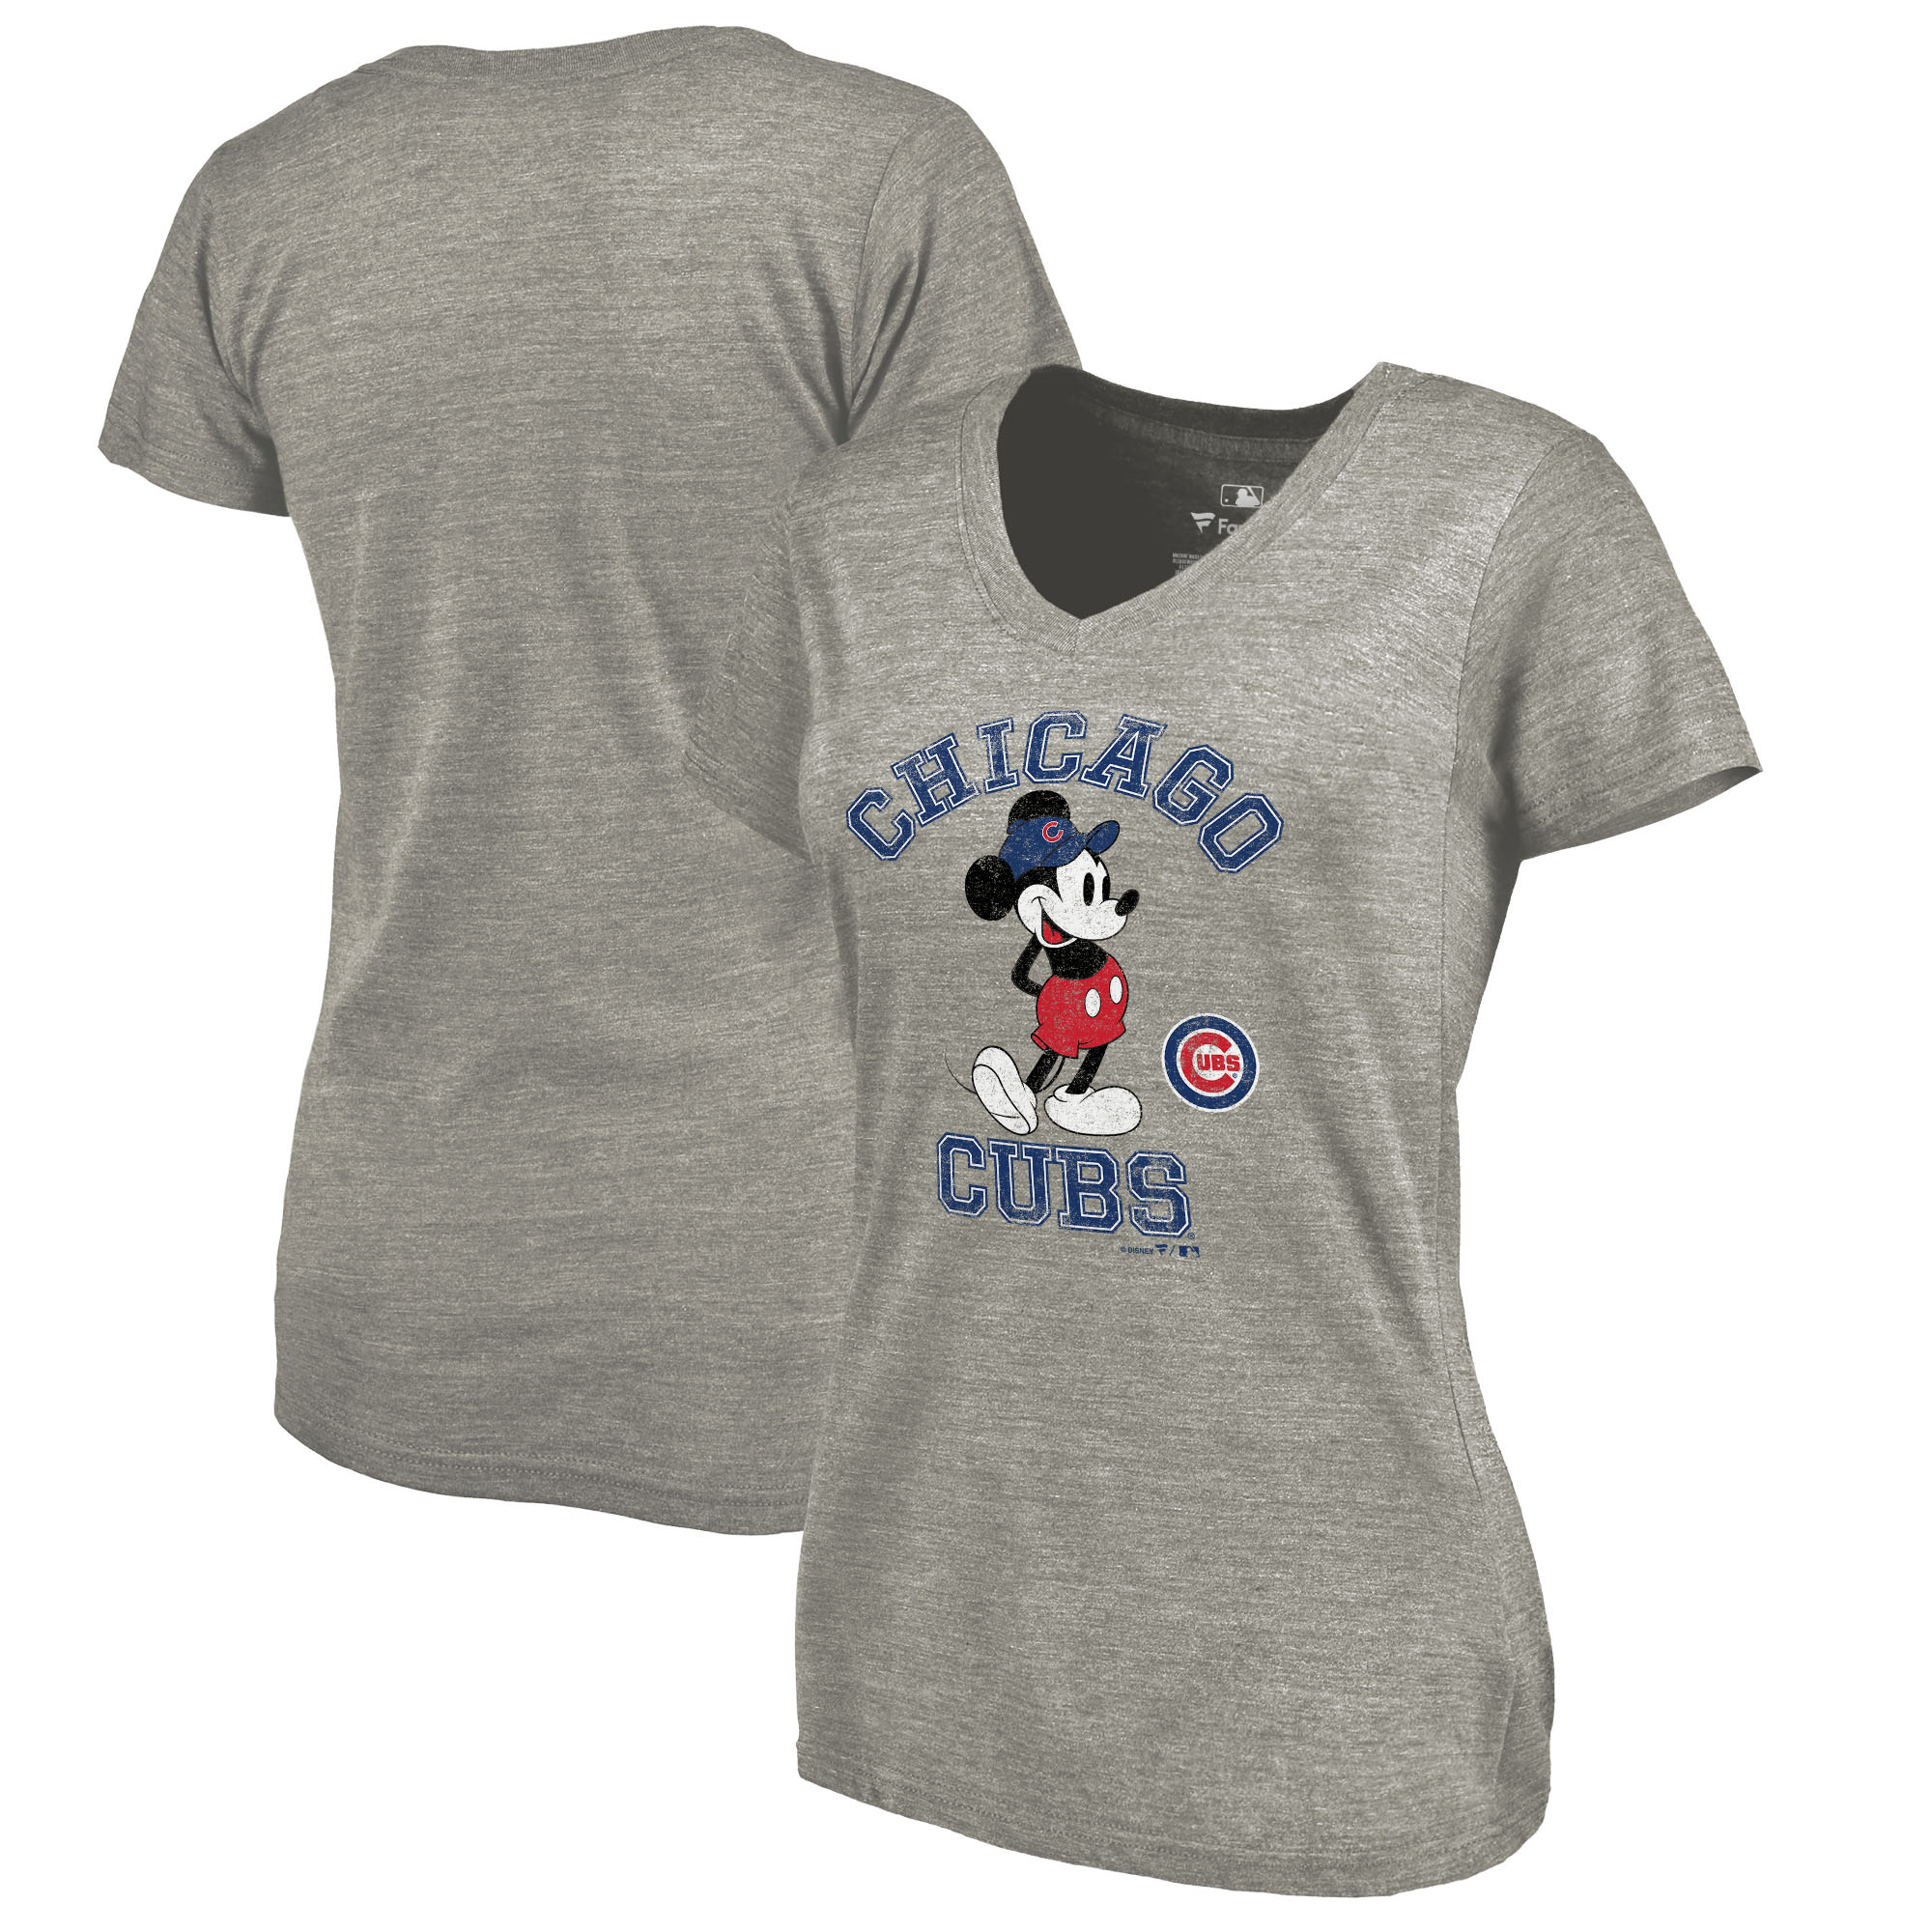 Chicago Cubs Fanatics Branded Women's Disney MLB Tradition Tri-Blend V-Neck T-Shirt - Heathered Gray